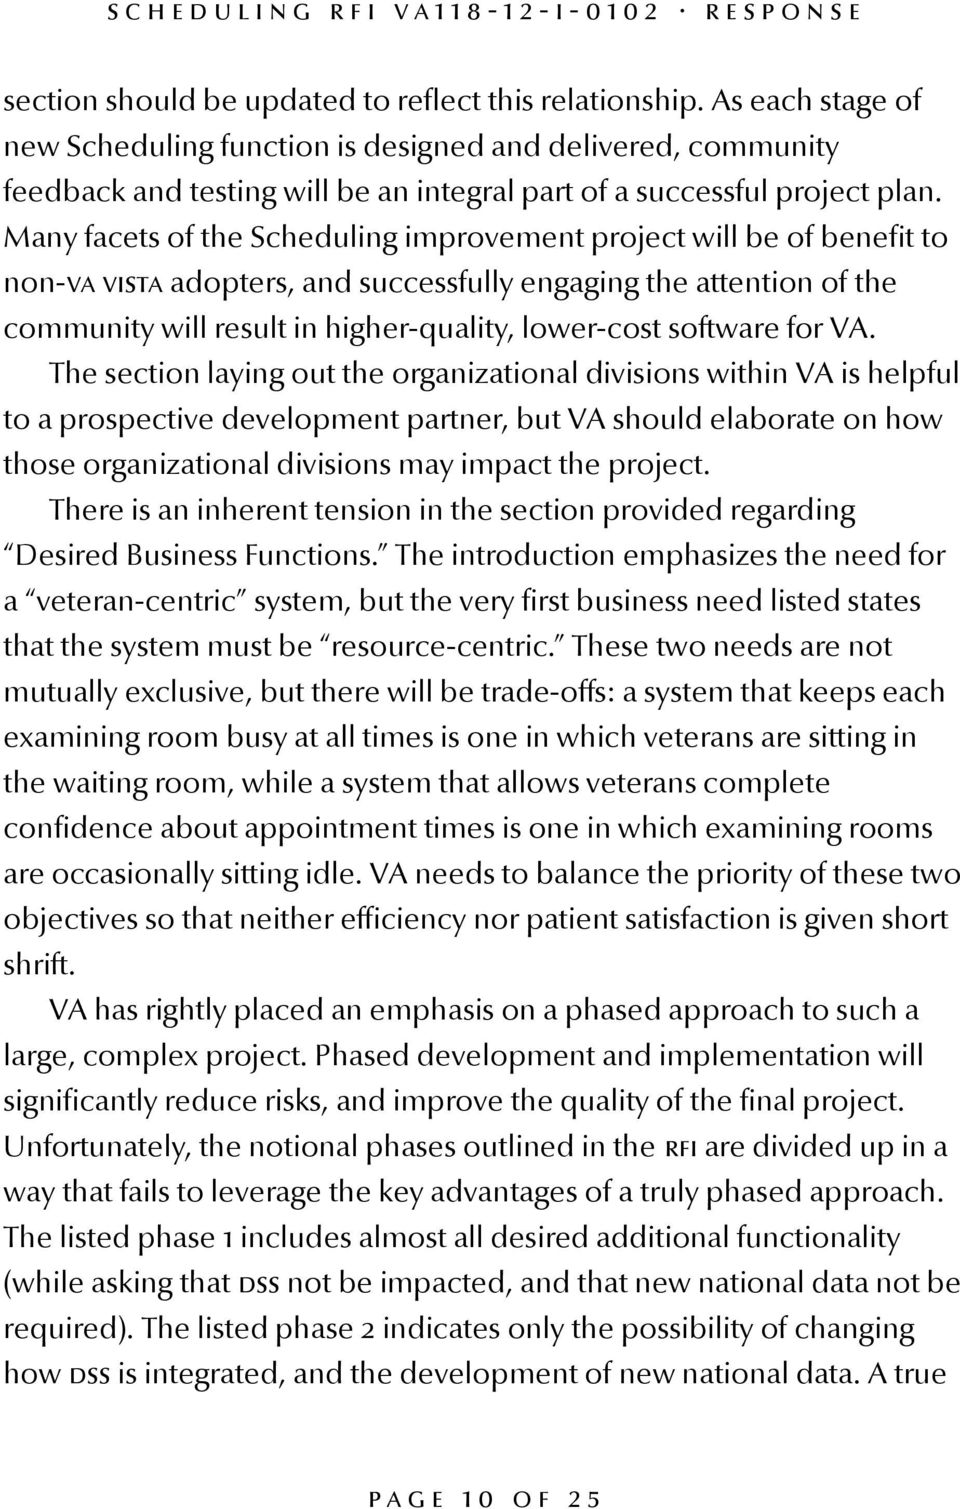 Many facets of the Scheduling improvement project will be of benefit to non-va vista adopters, and successfully engaging the attention of the community will result in higher-quality, lower-cost